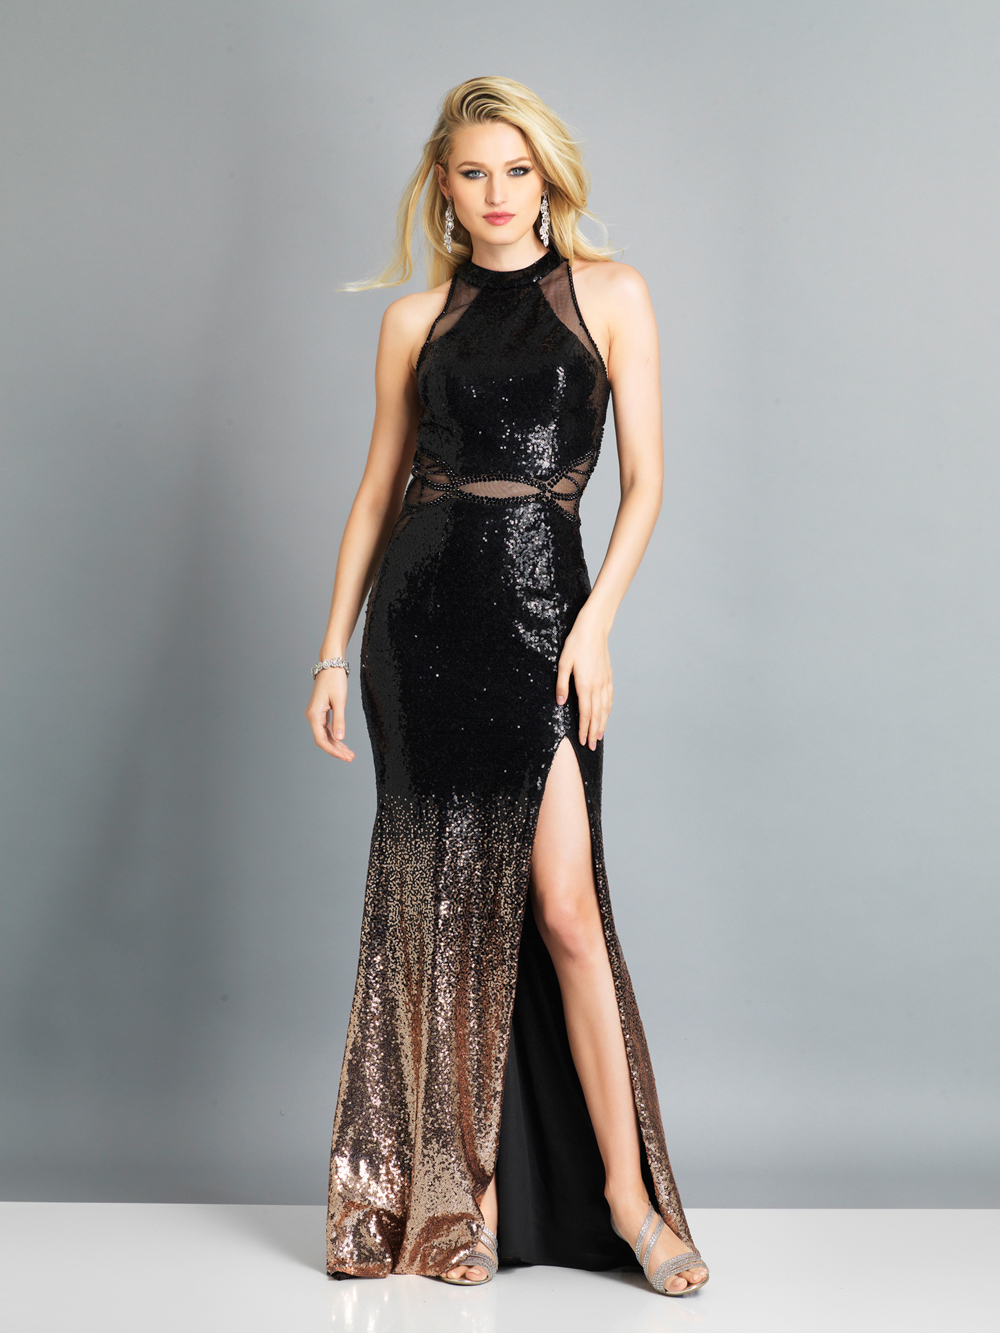 046233f457b Black And Sequin Prom Dress - Gomes Weine AG